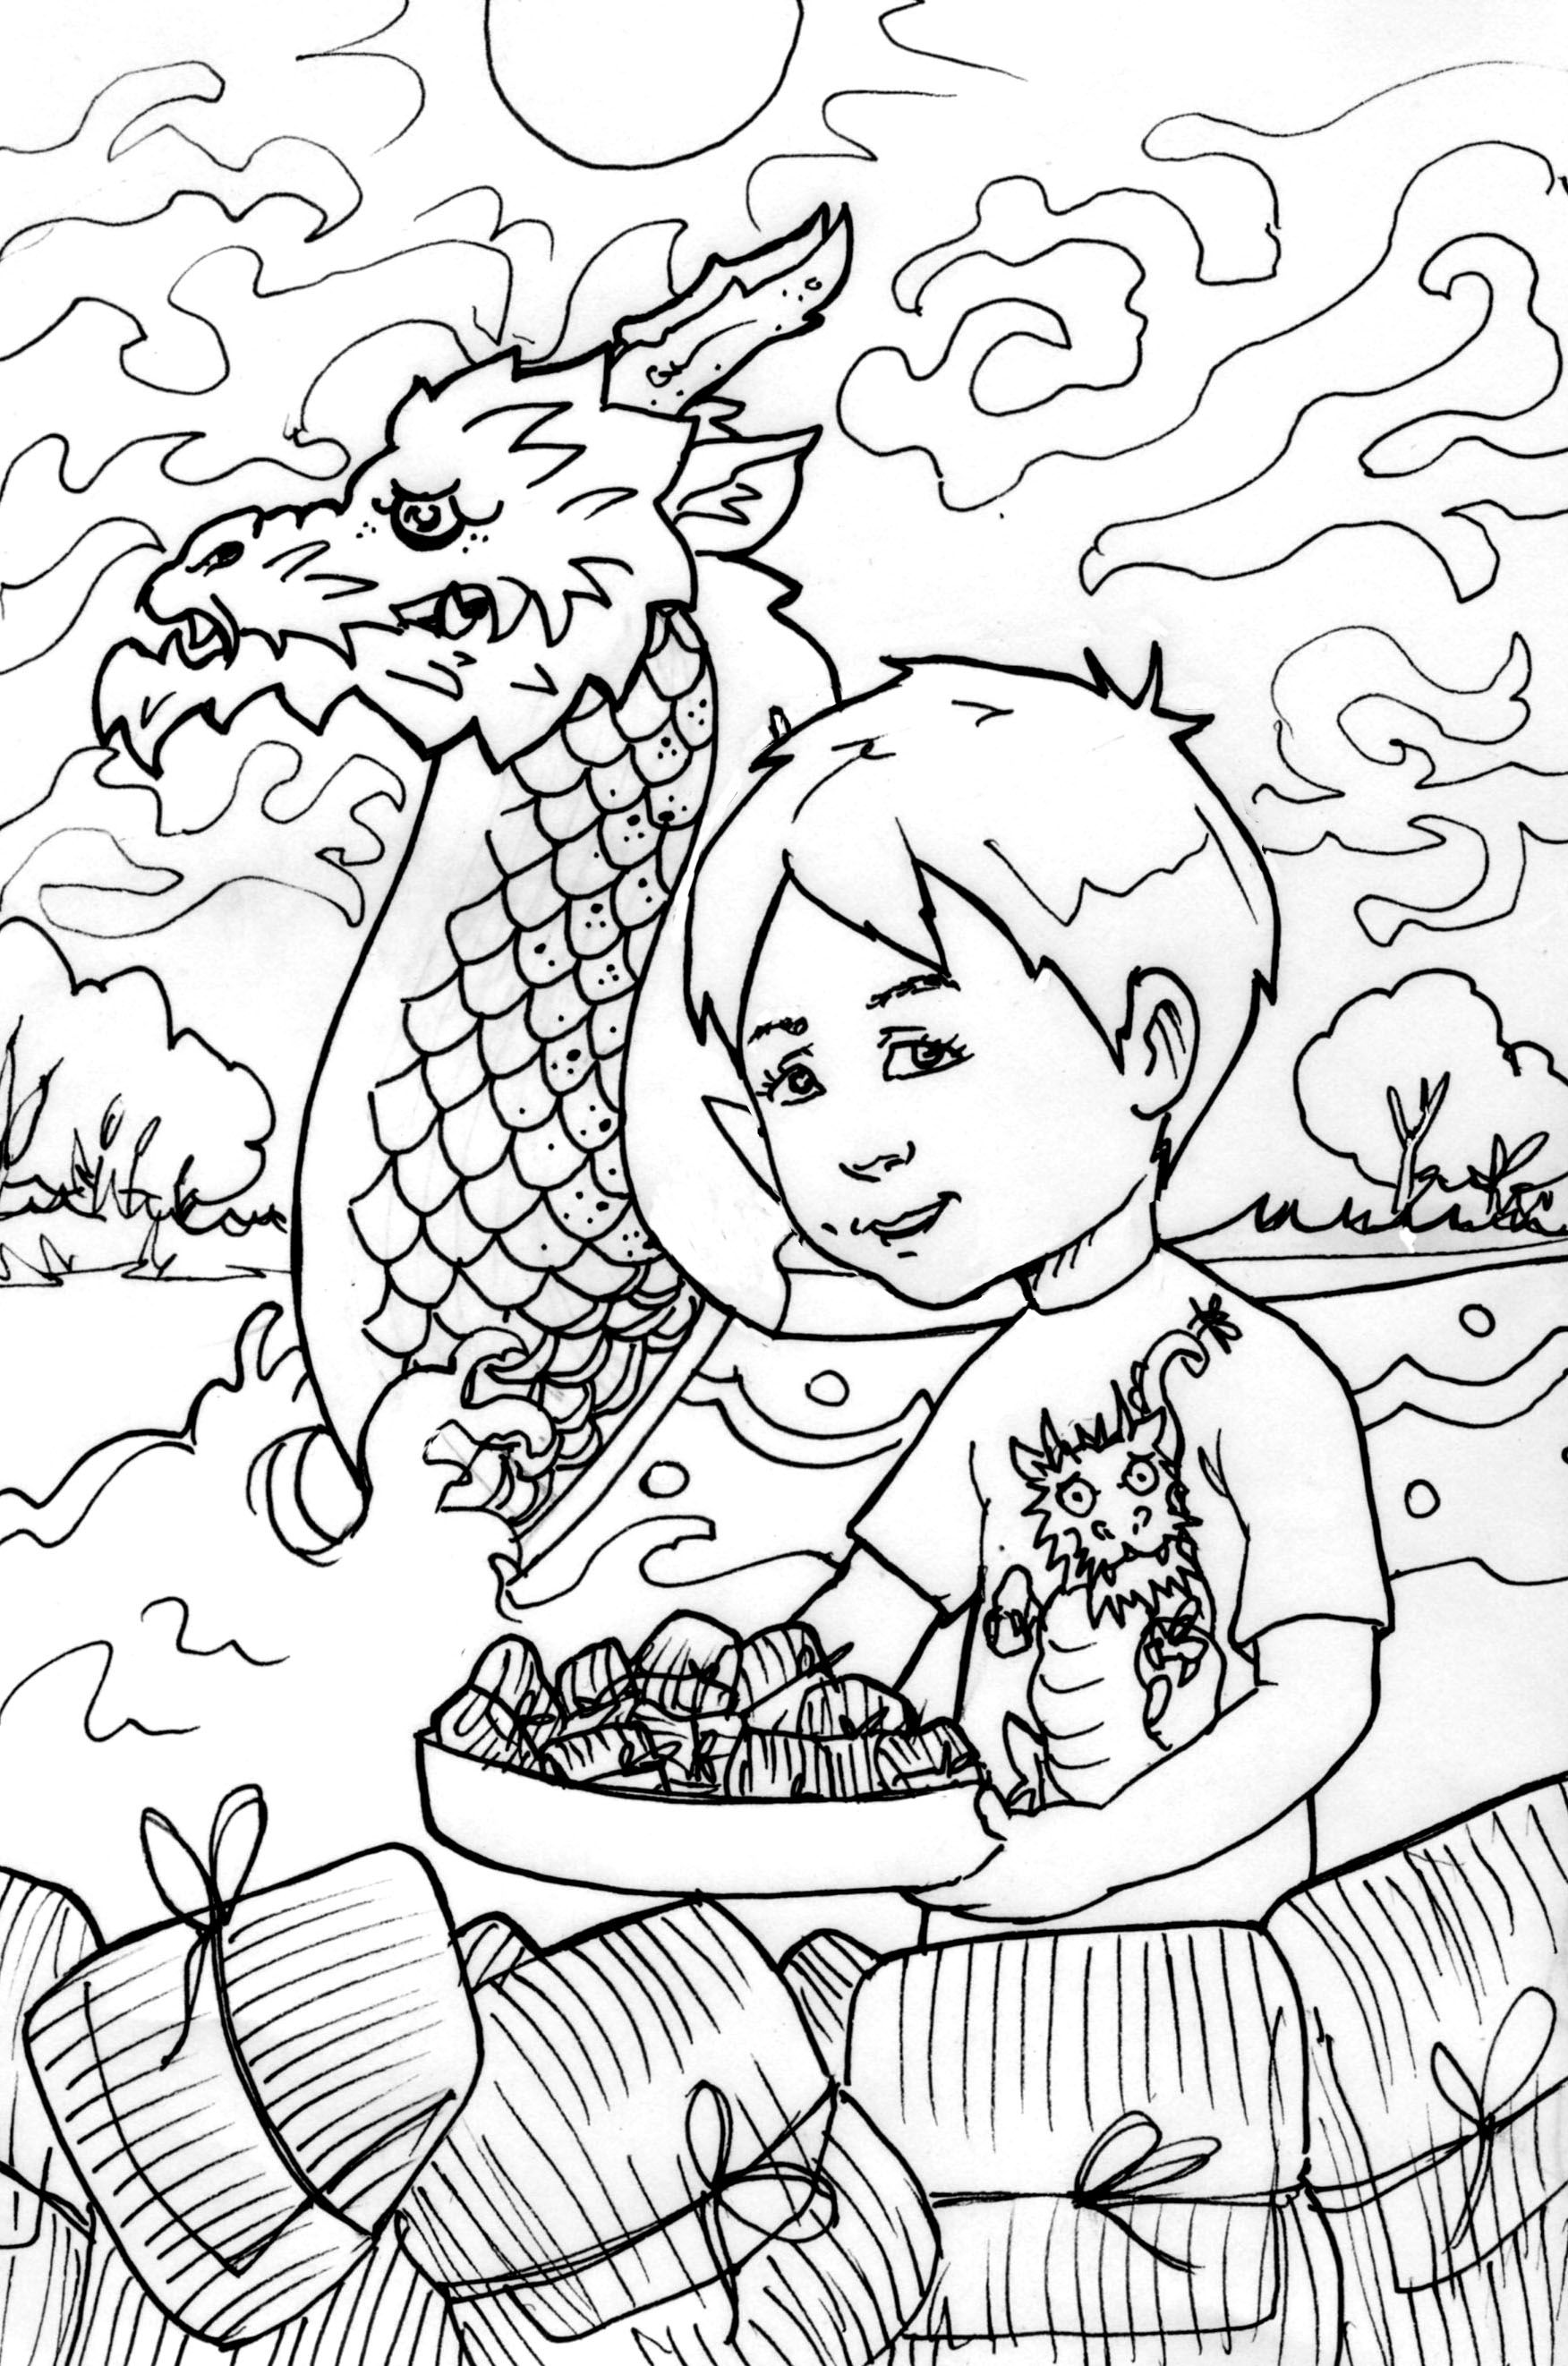 Dragon Boat Festival Coloring Sheet Kids Calashes